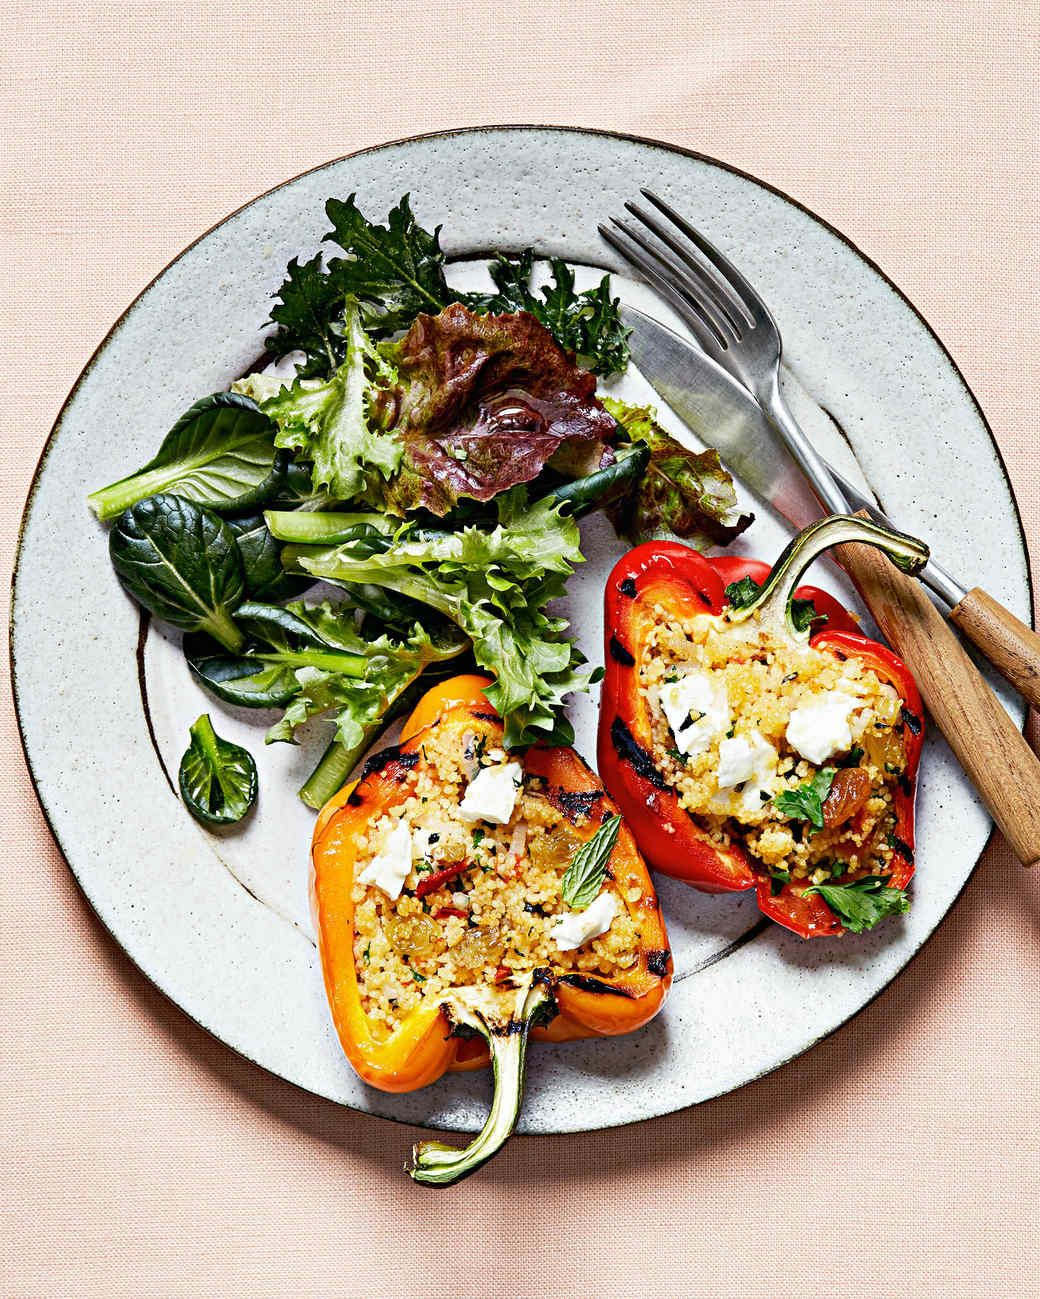 Meatless Grilling Recipes That Are So Right For Summer